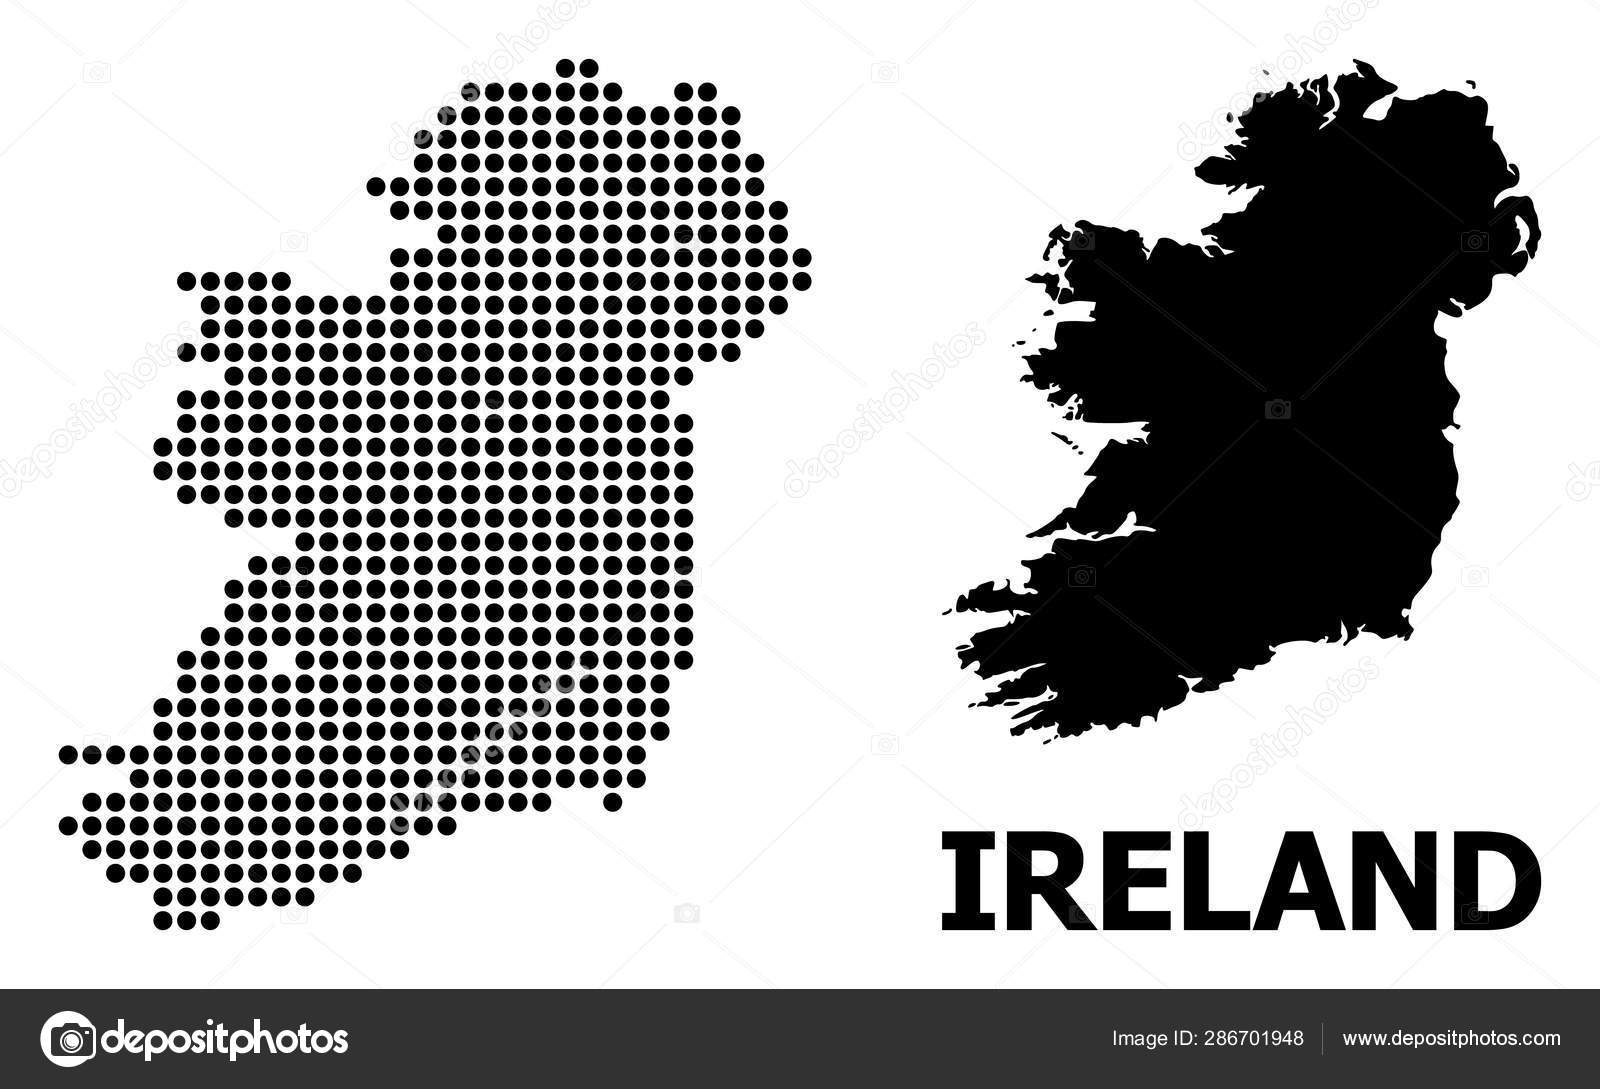 Map Of Ireland Islands.Dot Pattern Map Of Ireland Island Stock Vector C Neuralnetworks